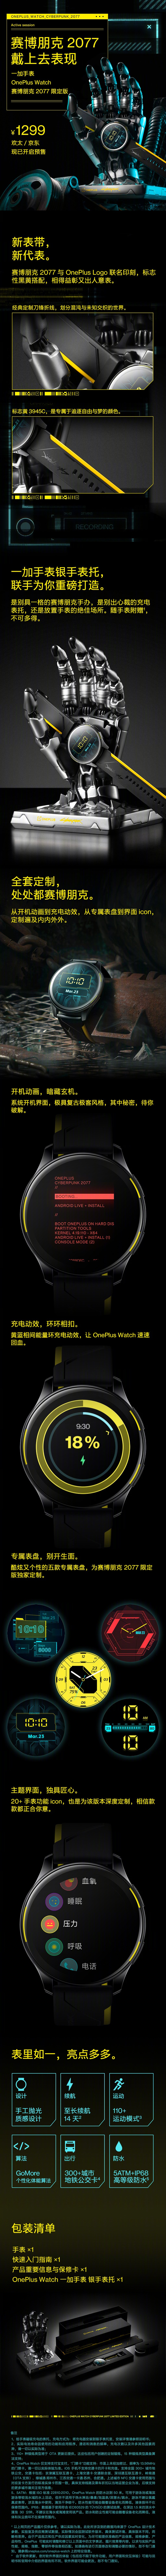 OnePlus Watch Cyberpunk 2077 limited edition now on pre-order in China with cool hand-shaped stand